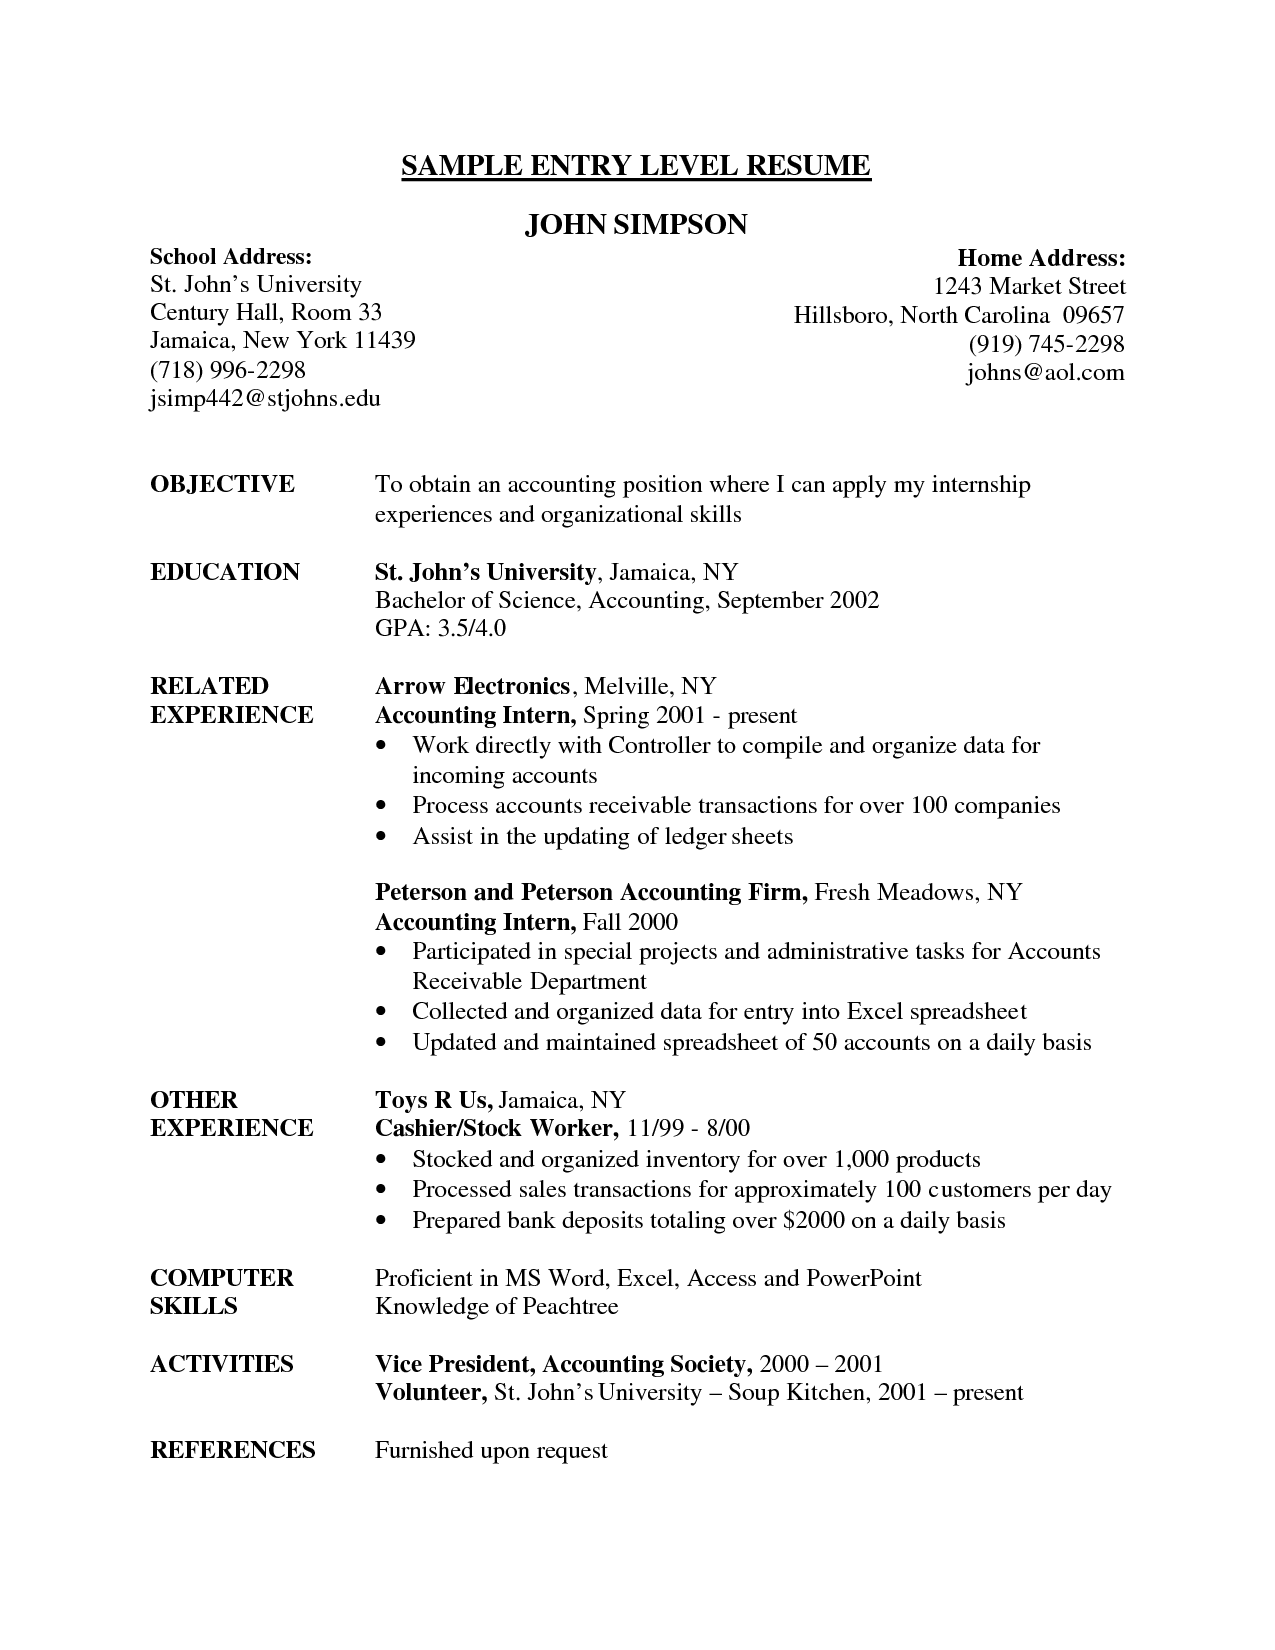 example of resume profile entry level httpwwwresumecareerinfo sample resume templatesexample. Resume Example. Resume CV Cover Letter